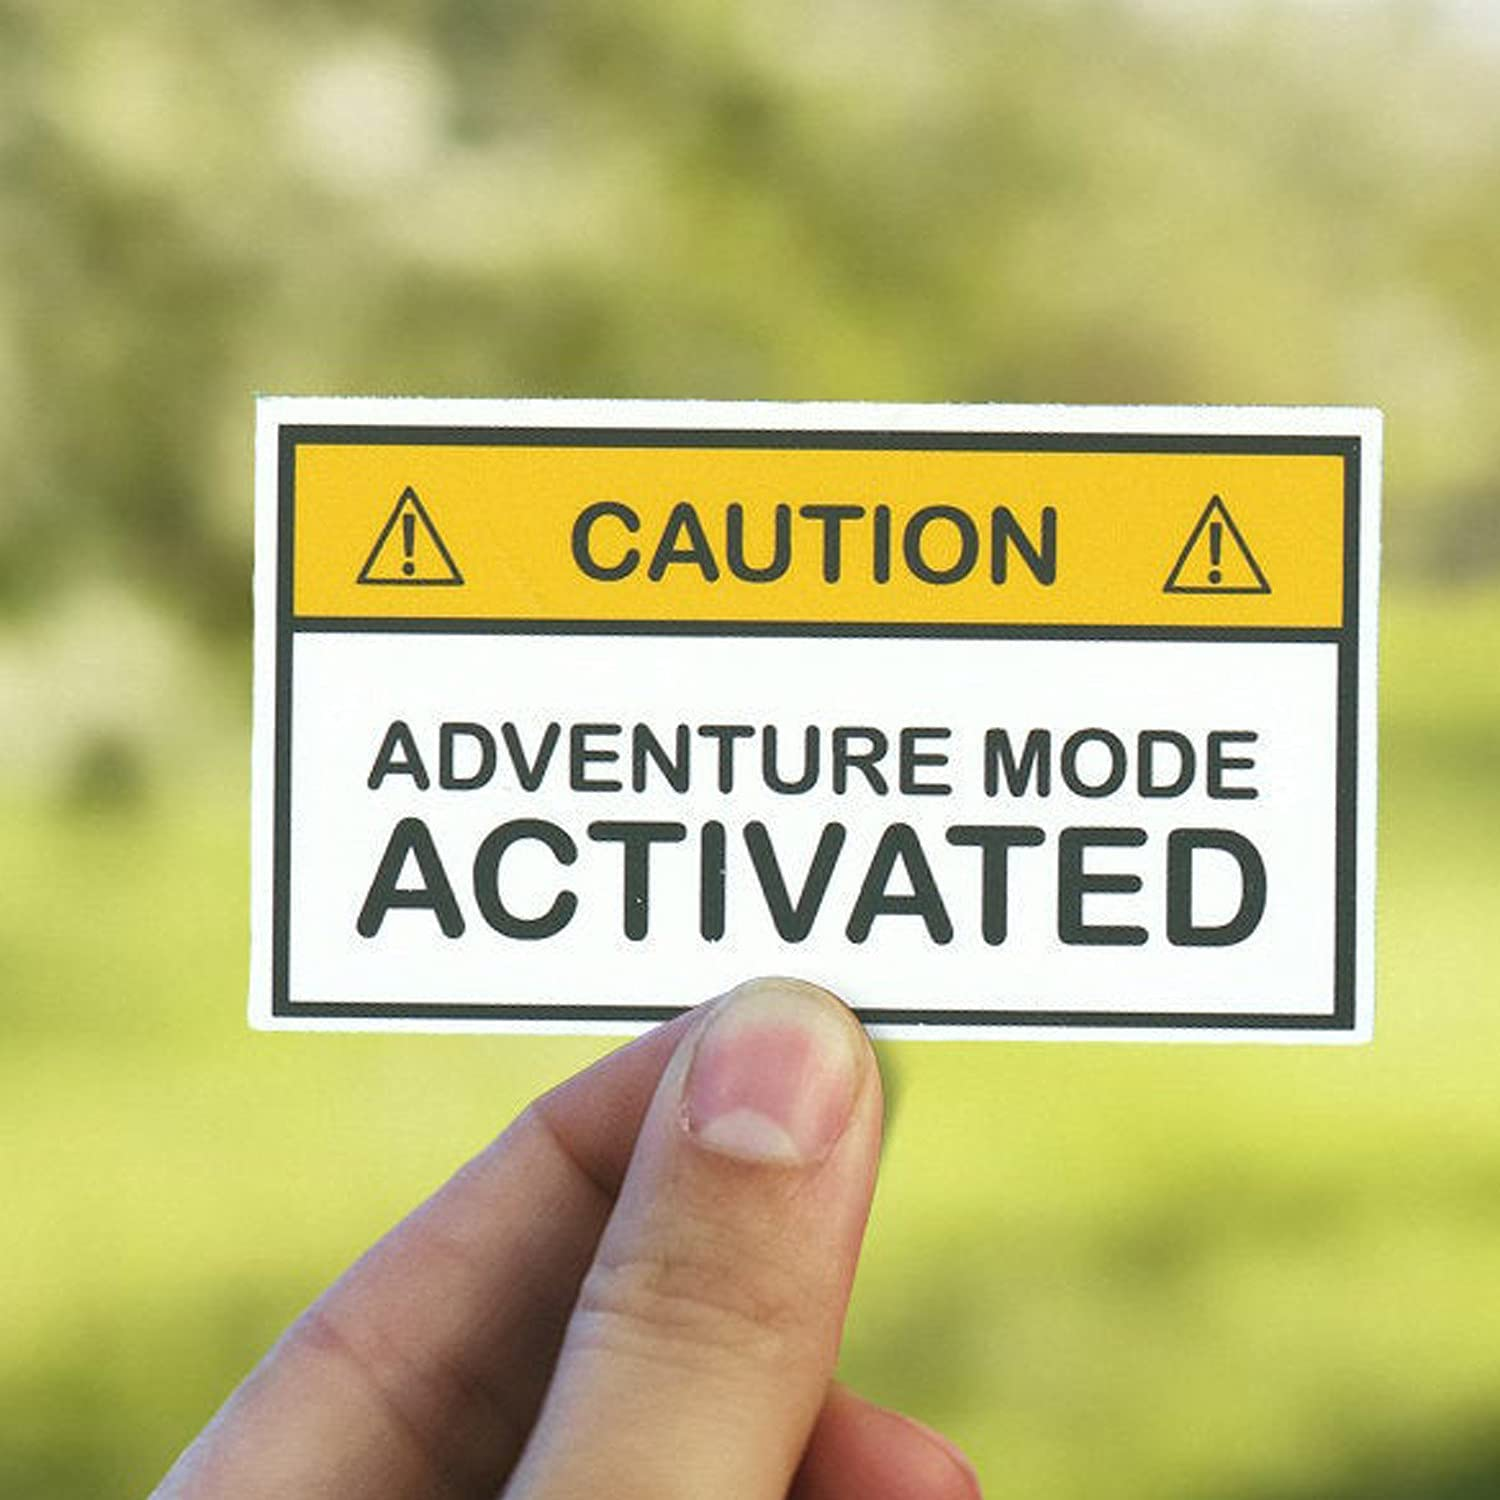 Caution Adventure Mode Activated Warning Sticke Camping Outlet SALE Ranking TOP2 Sticker